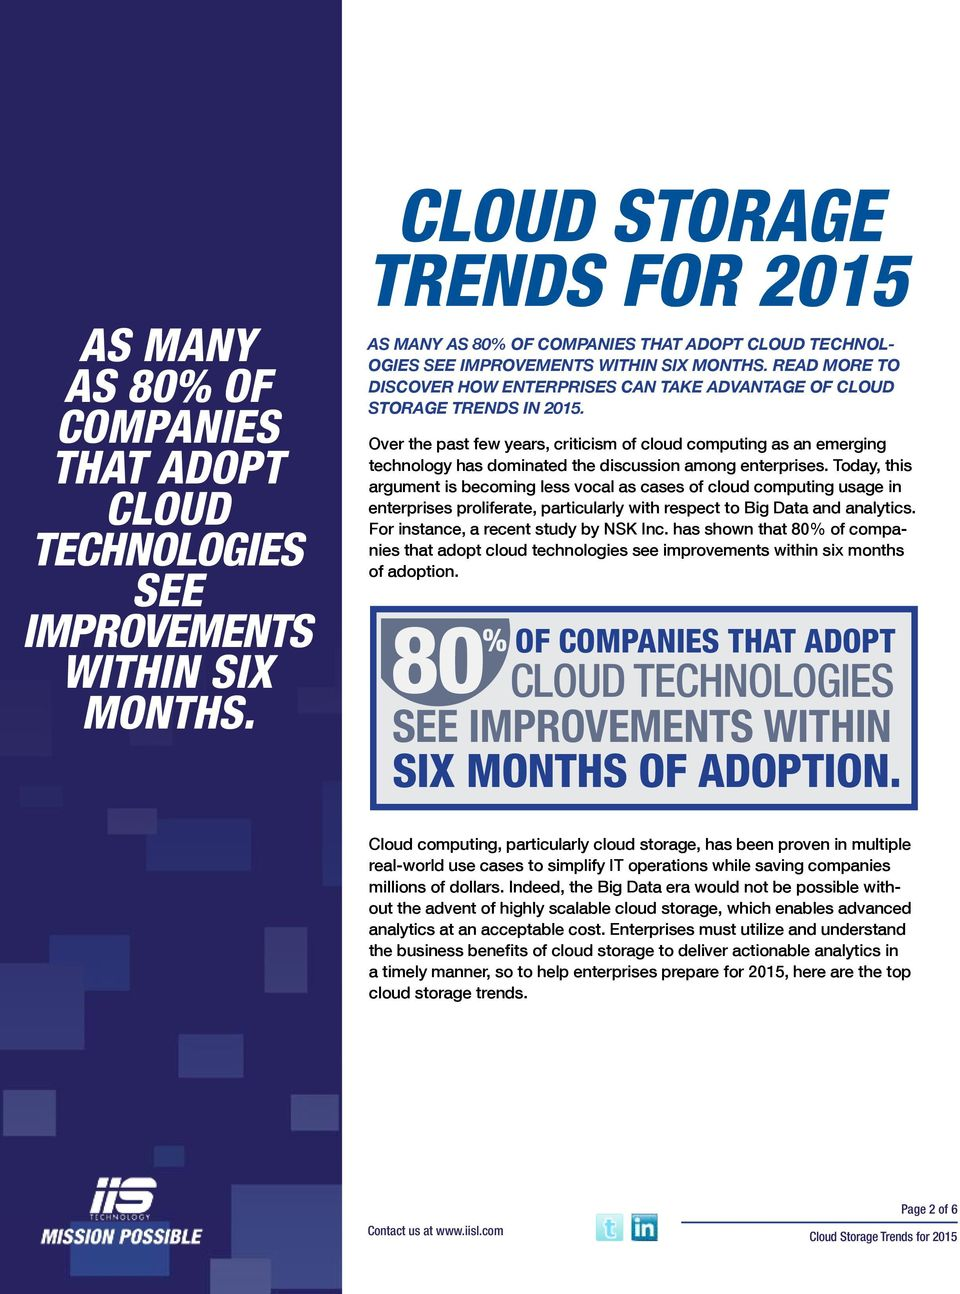 READ MORE TO DISCOVER HOW ENTERPRISES CAN TAKE ADVANTAGE OF CLOUD STORAGE TRENDS IN 2015.